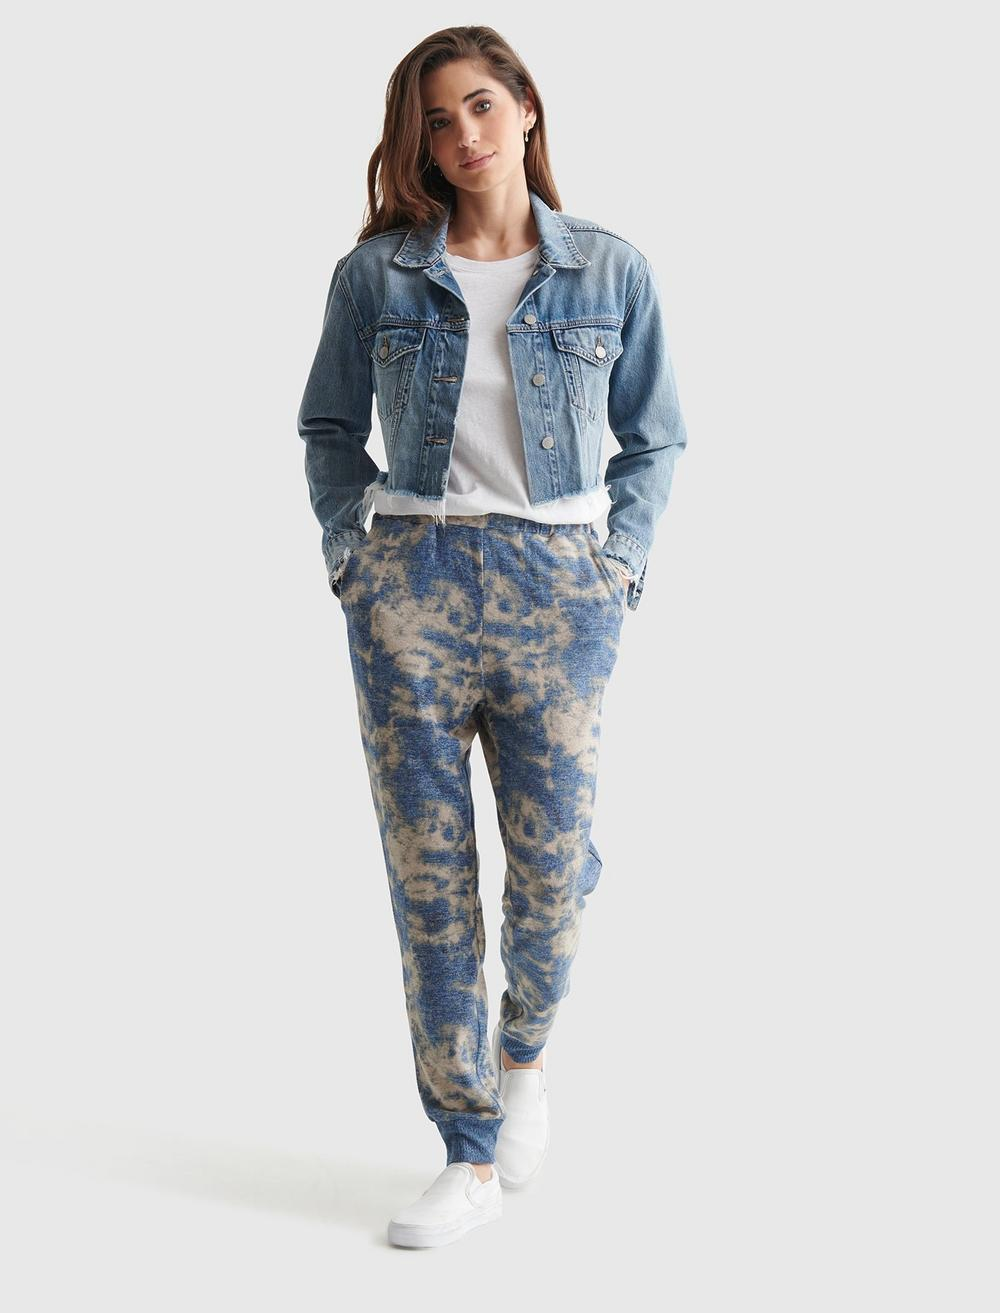 CLOUD JERSEY EASY JOGGER, image 1